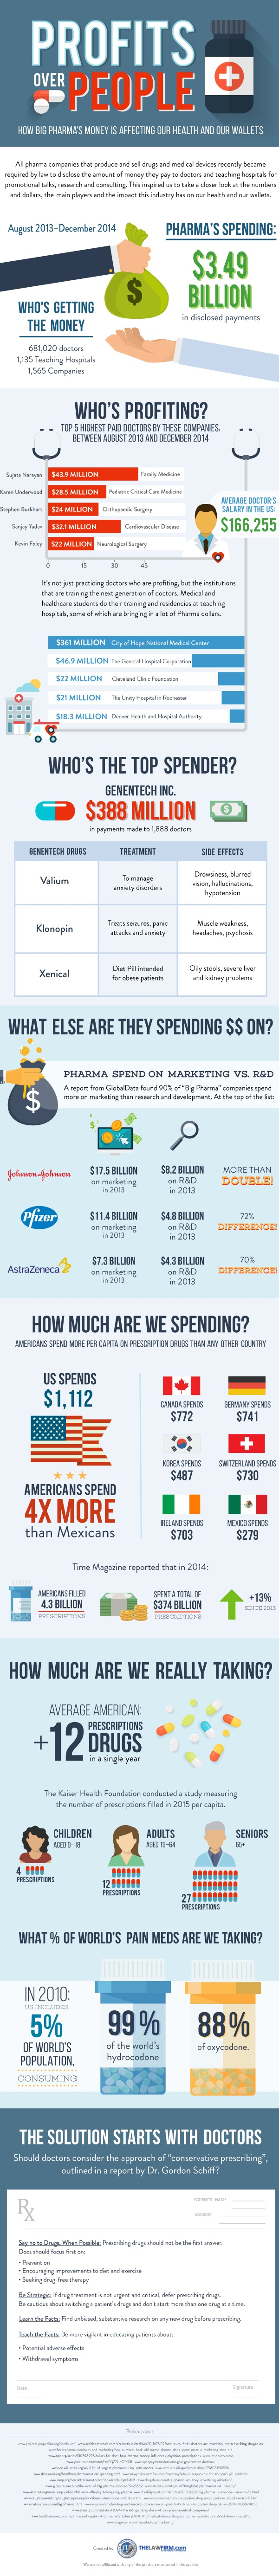 us_pharma-profits-over-people